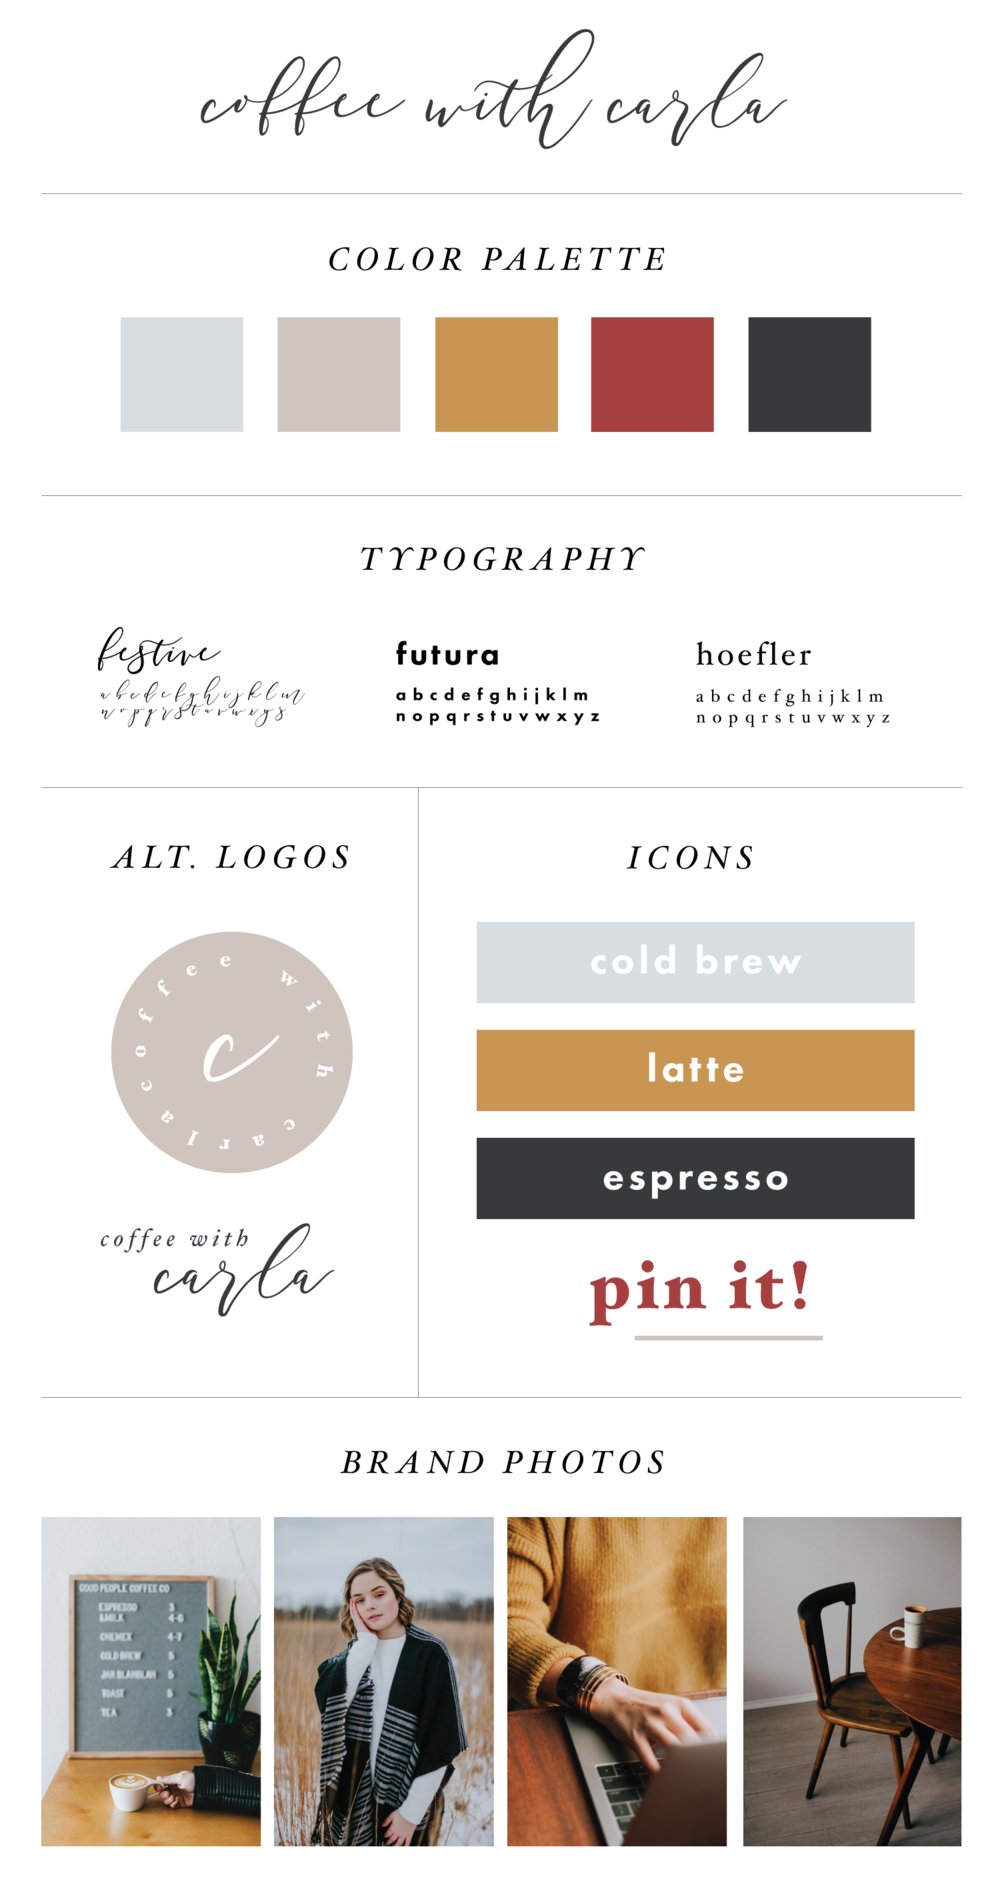 Premade Branding & Logo Kit | Branding Kit for Coffee Shops | Coffee Bloggers | Coffee Shops | Branding Design | Brand Identity | Branding Kits | Branding For Businesses | Logo Design | Brand Design | Branding | Brand Board | Branding For Creative Entrepreneurs and Small Business Owners